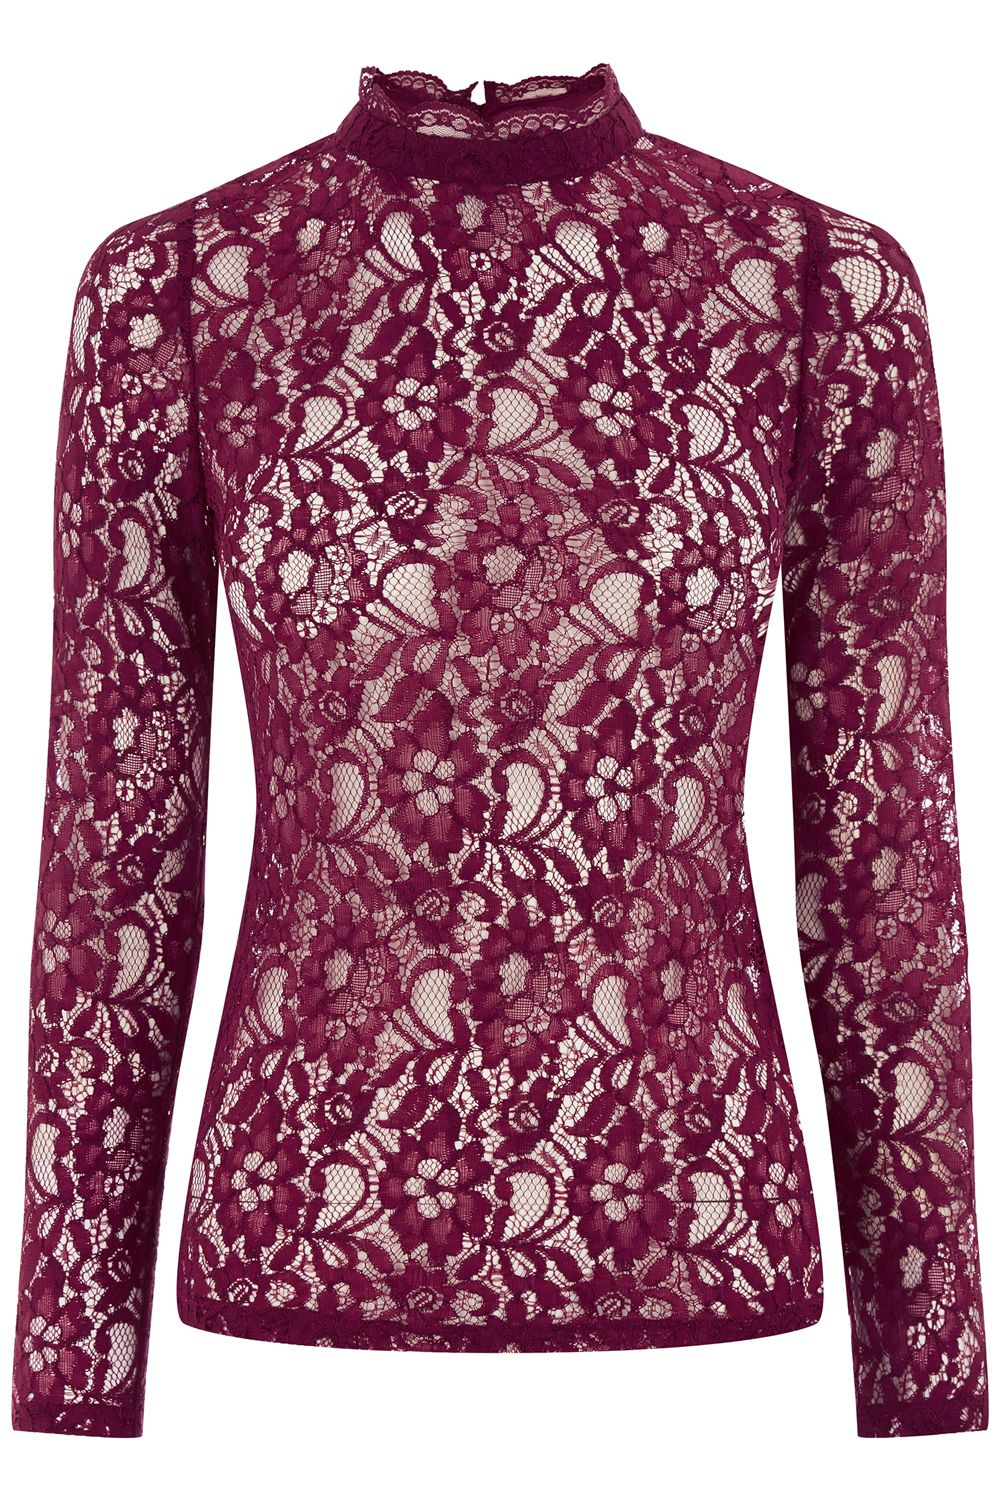 Oasis Lace High Neck Top Red £25.00 AT vintagedancer.com